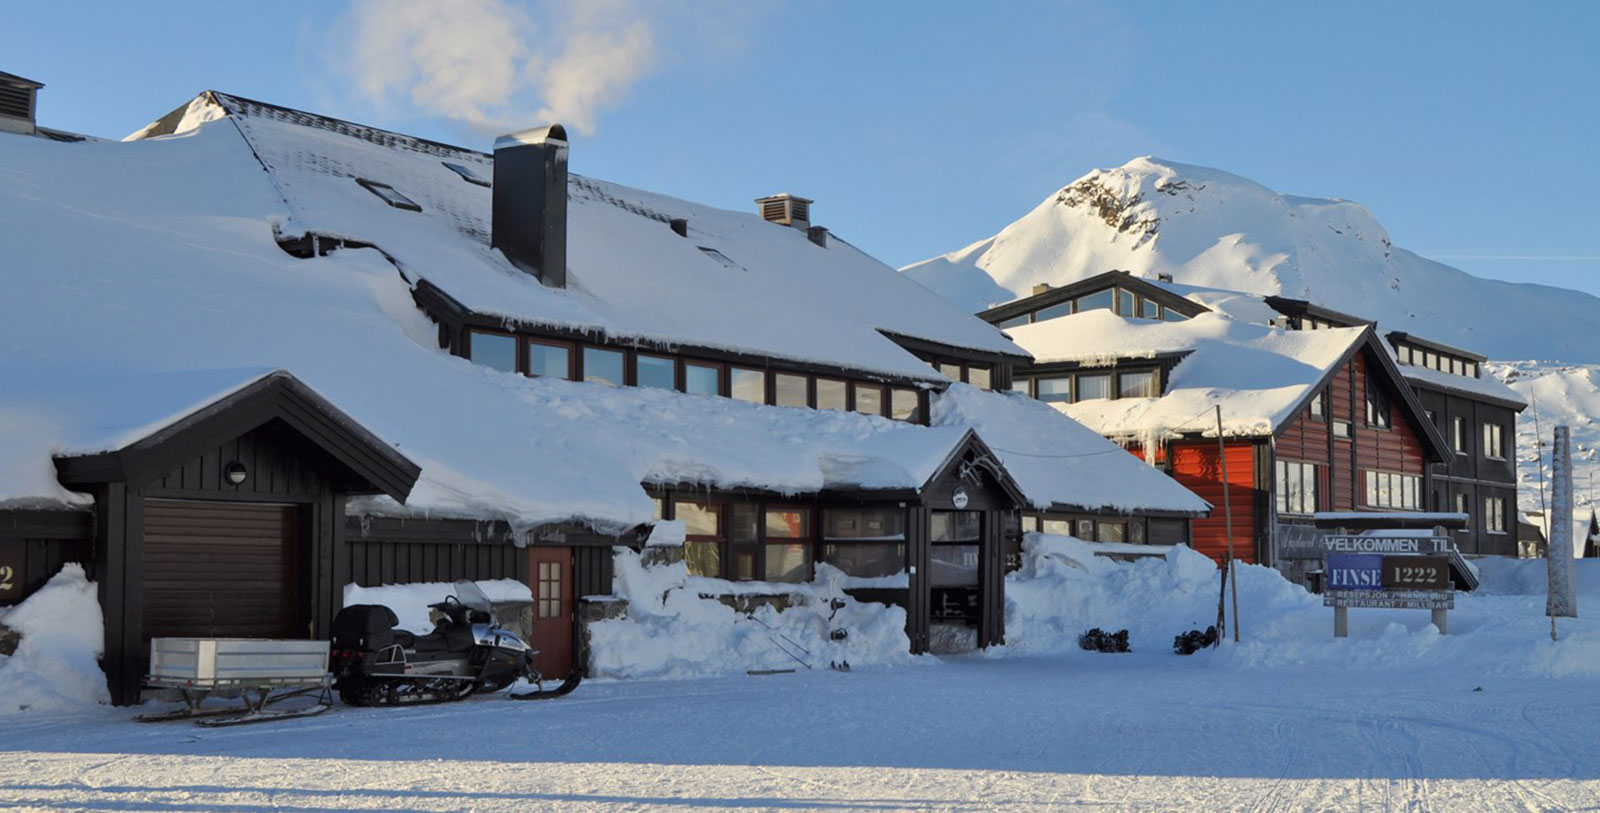 Image of Exterior of Hotel, Finse 1222, Norway, Overview